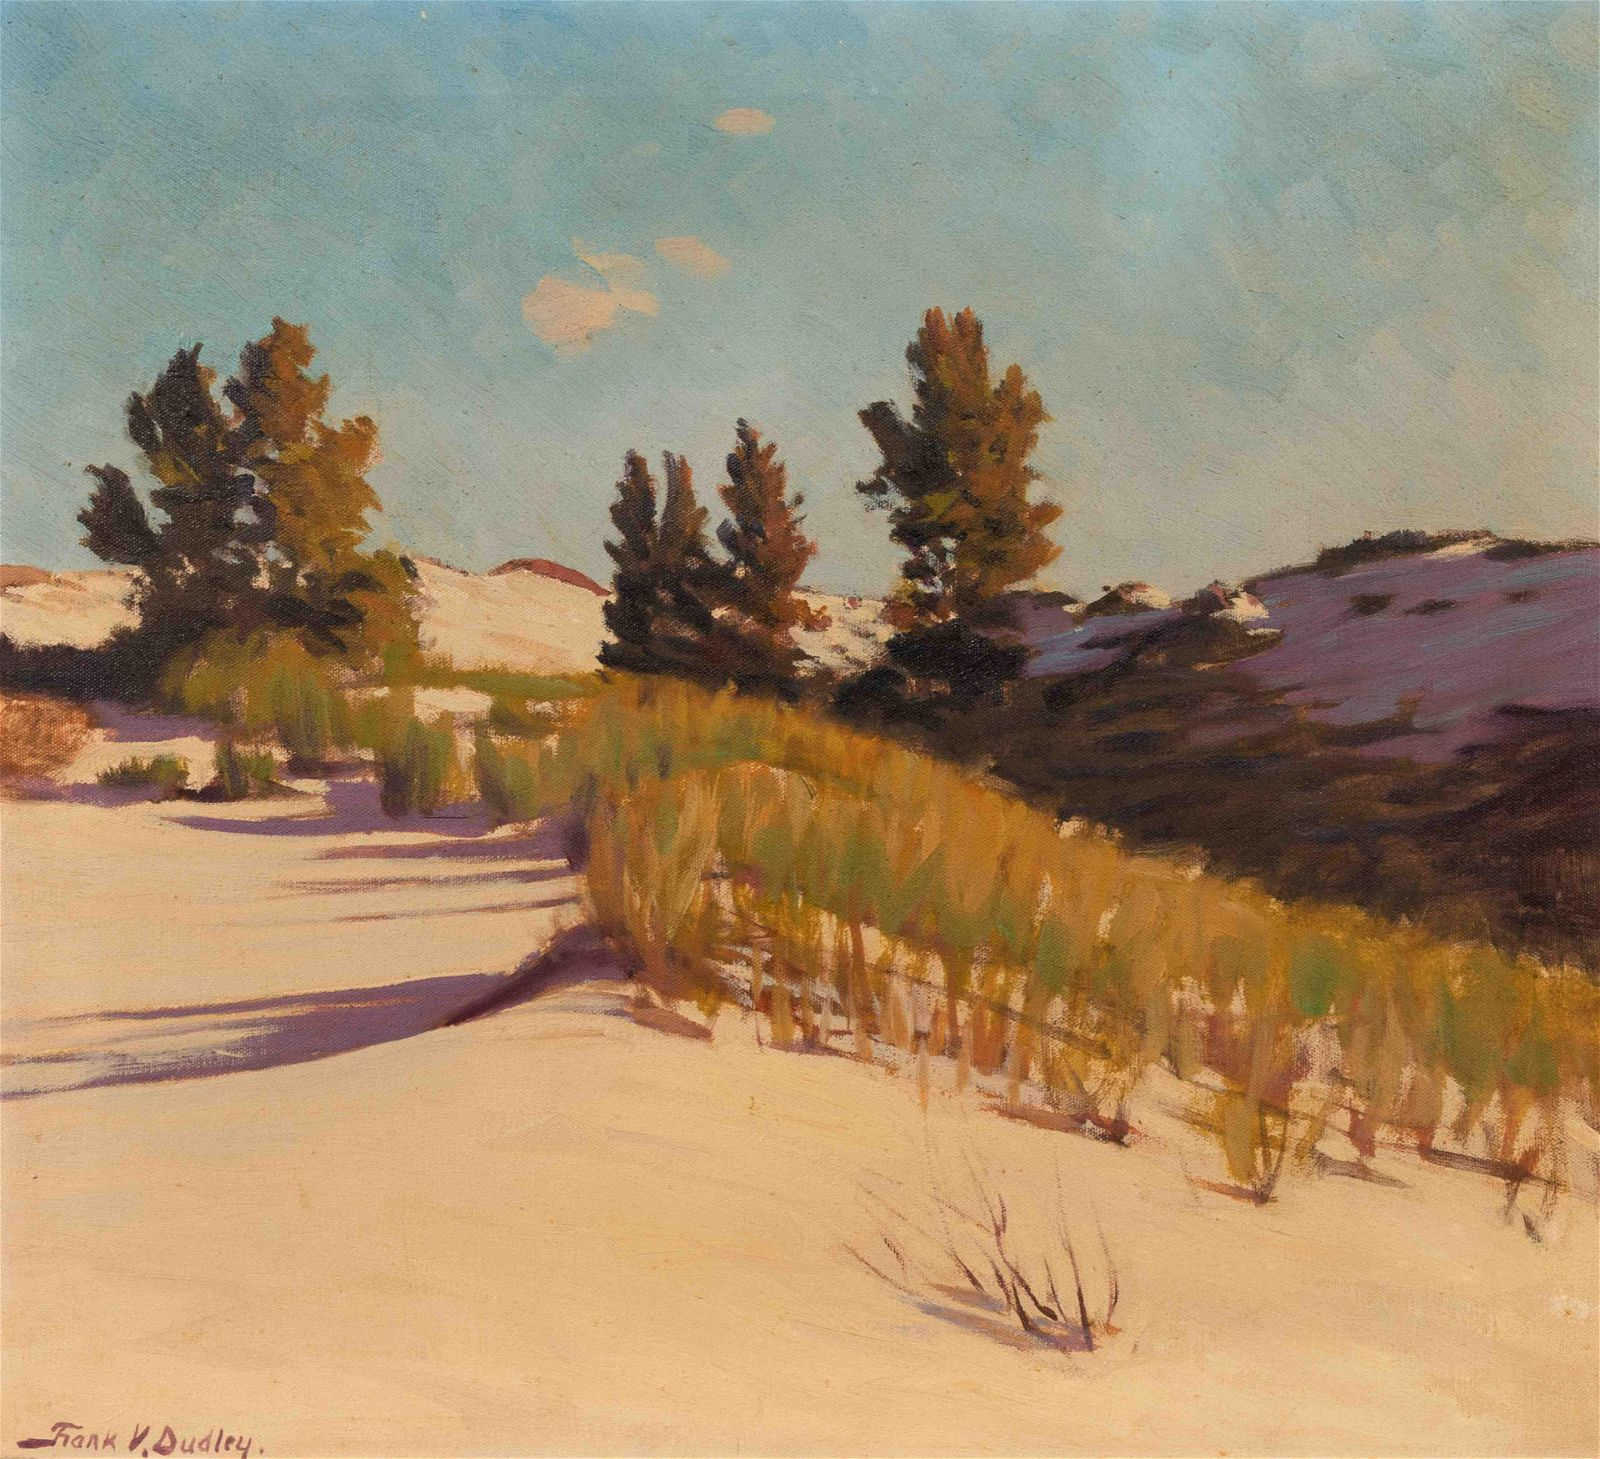 Frank Dudley (American, 1868-1957) Over the Hill and